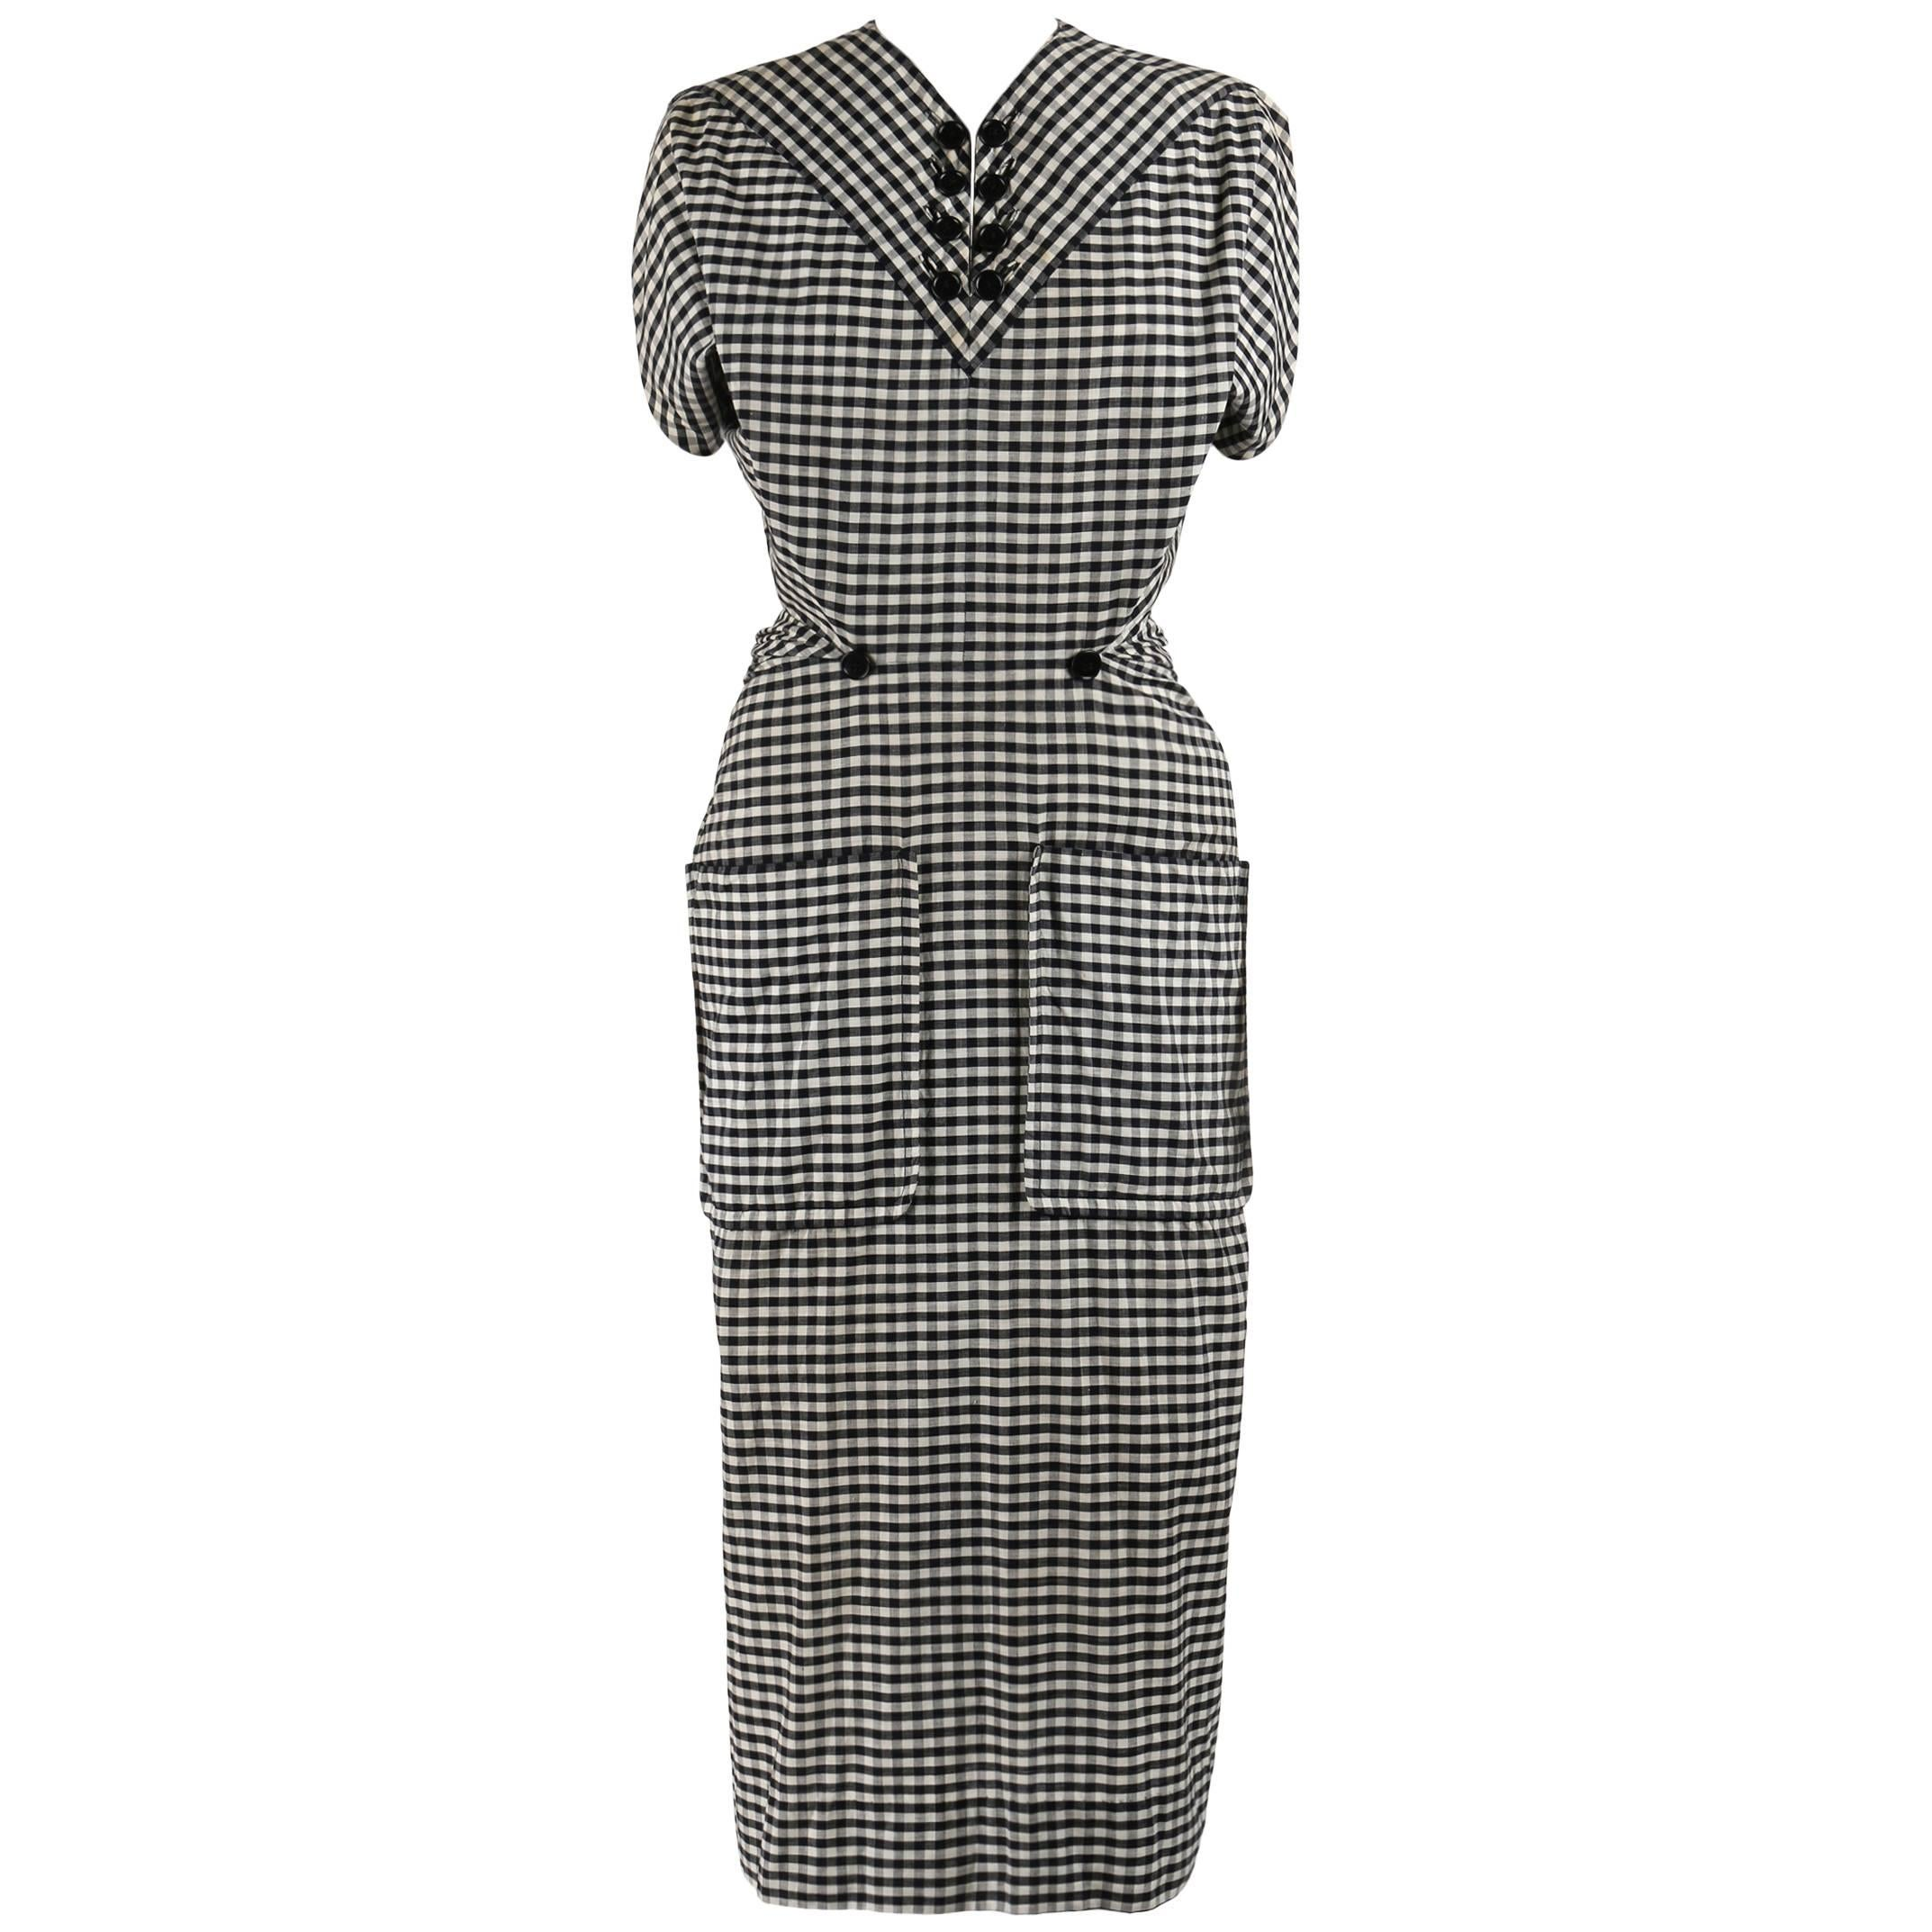 1949 S/S JACQUES FATH Black & White Gingham Fan Back Peplum Afternoon Dress